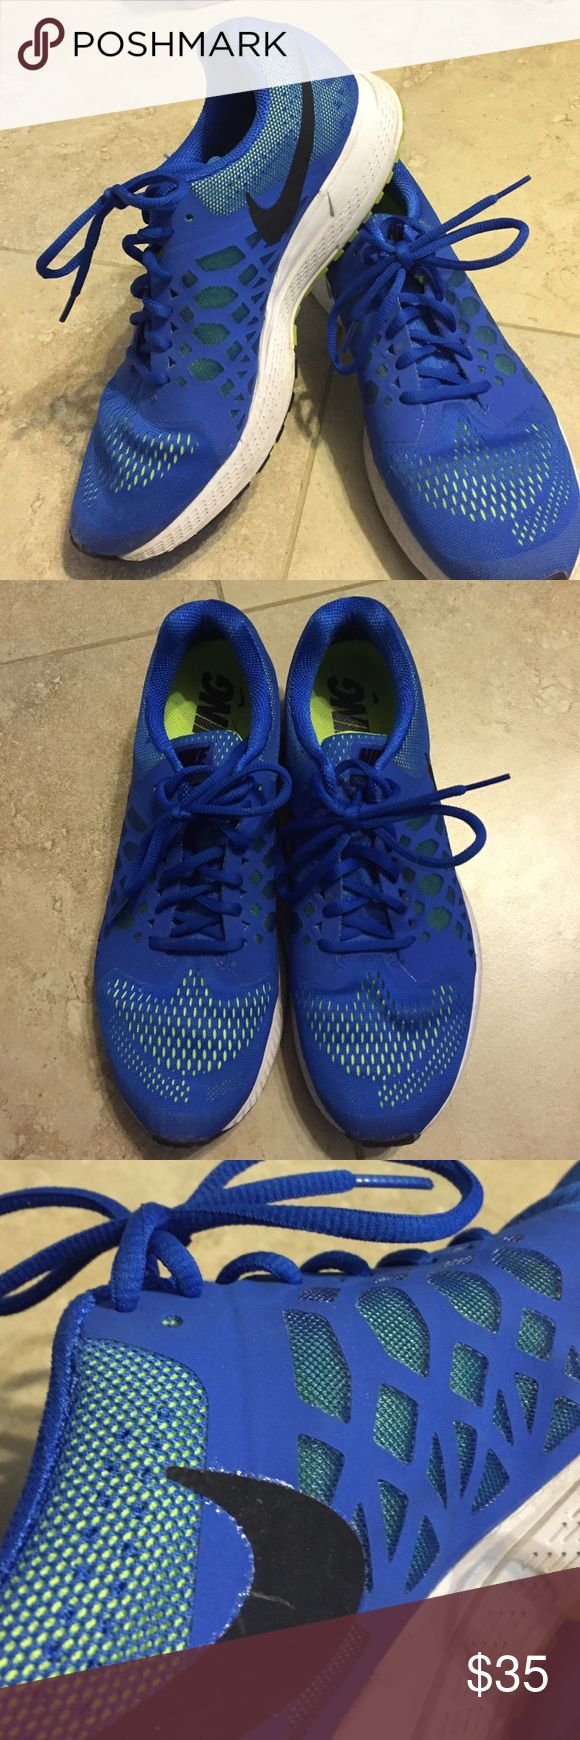 Blue Nike Zooms Blue/ neon yellow Nike Zoom. In amazing condition. Worn once/twice 😊 perfect for a run! Nike Shoes Athletic Shoes